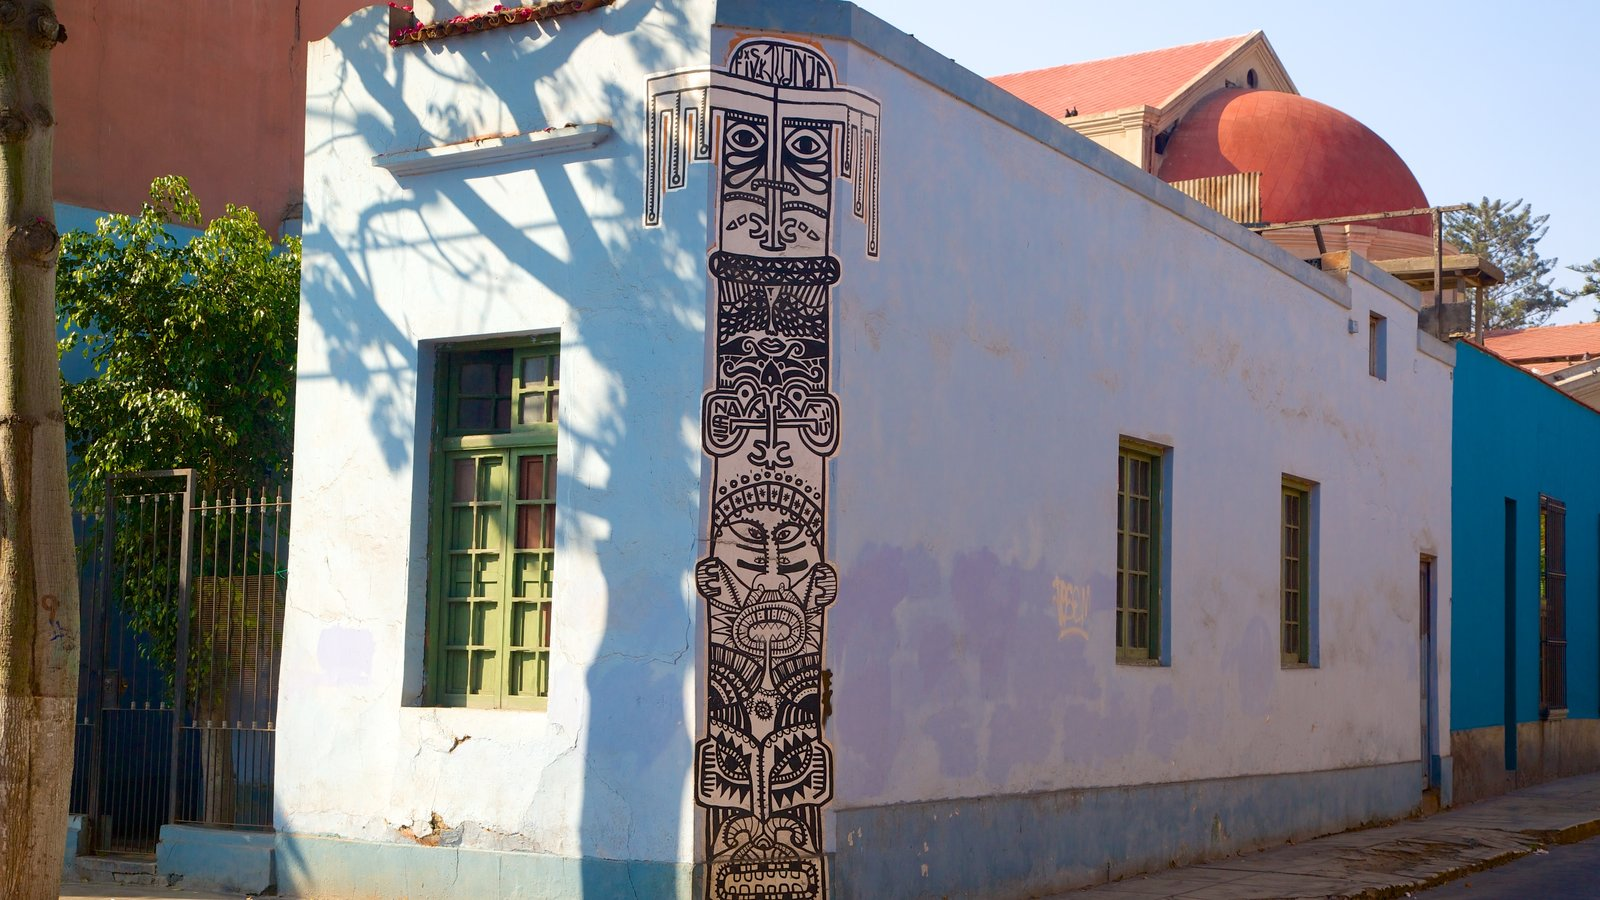 Barranco showing a small town or village and outdoor art